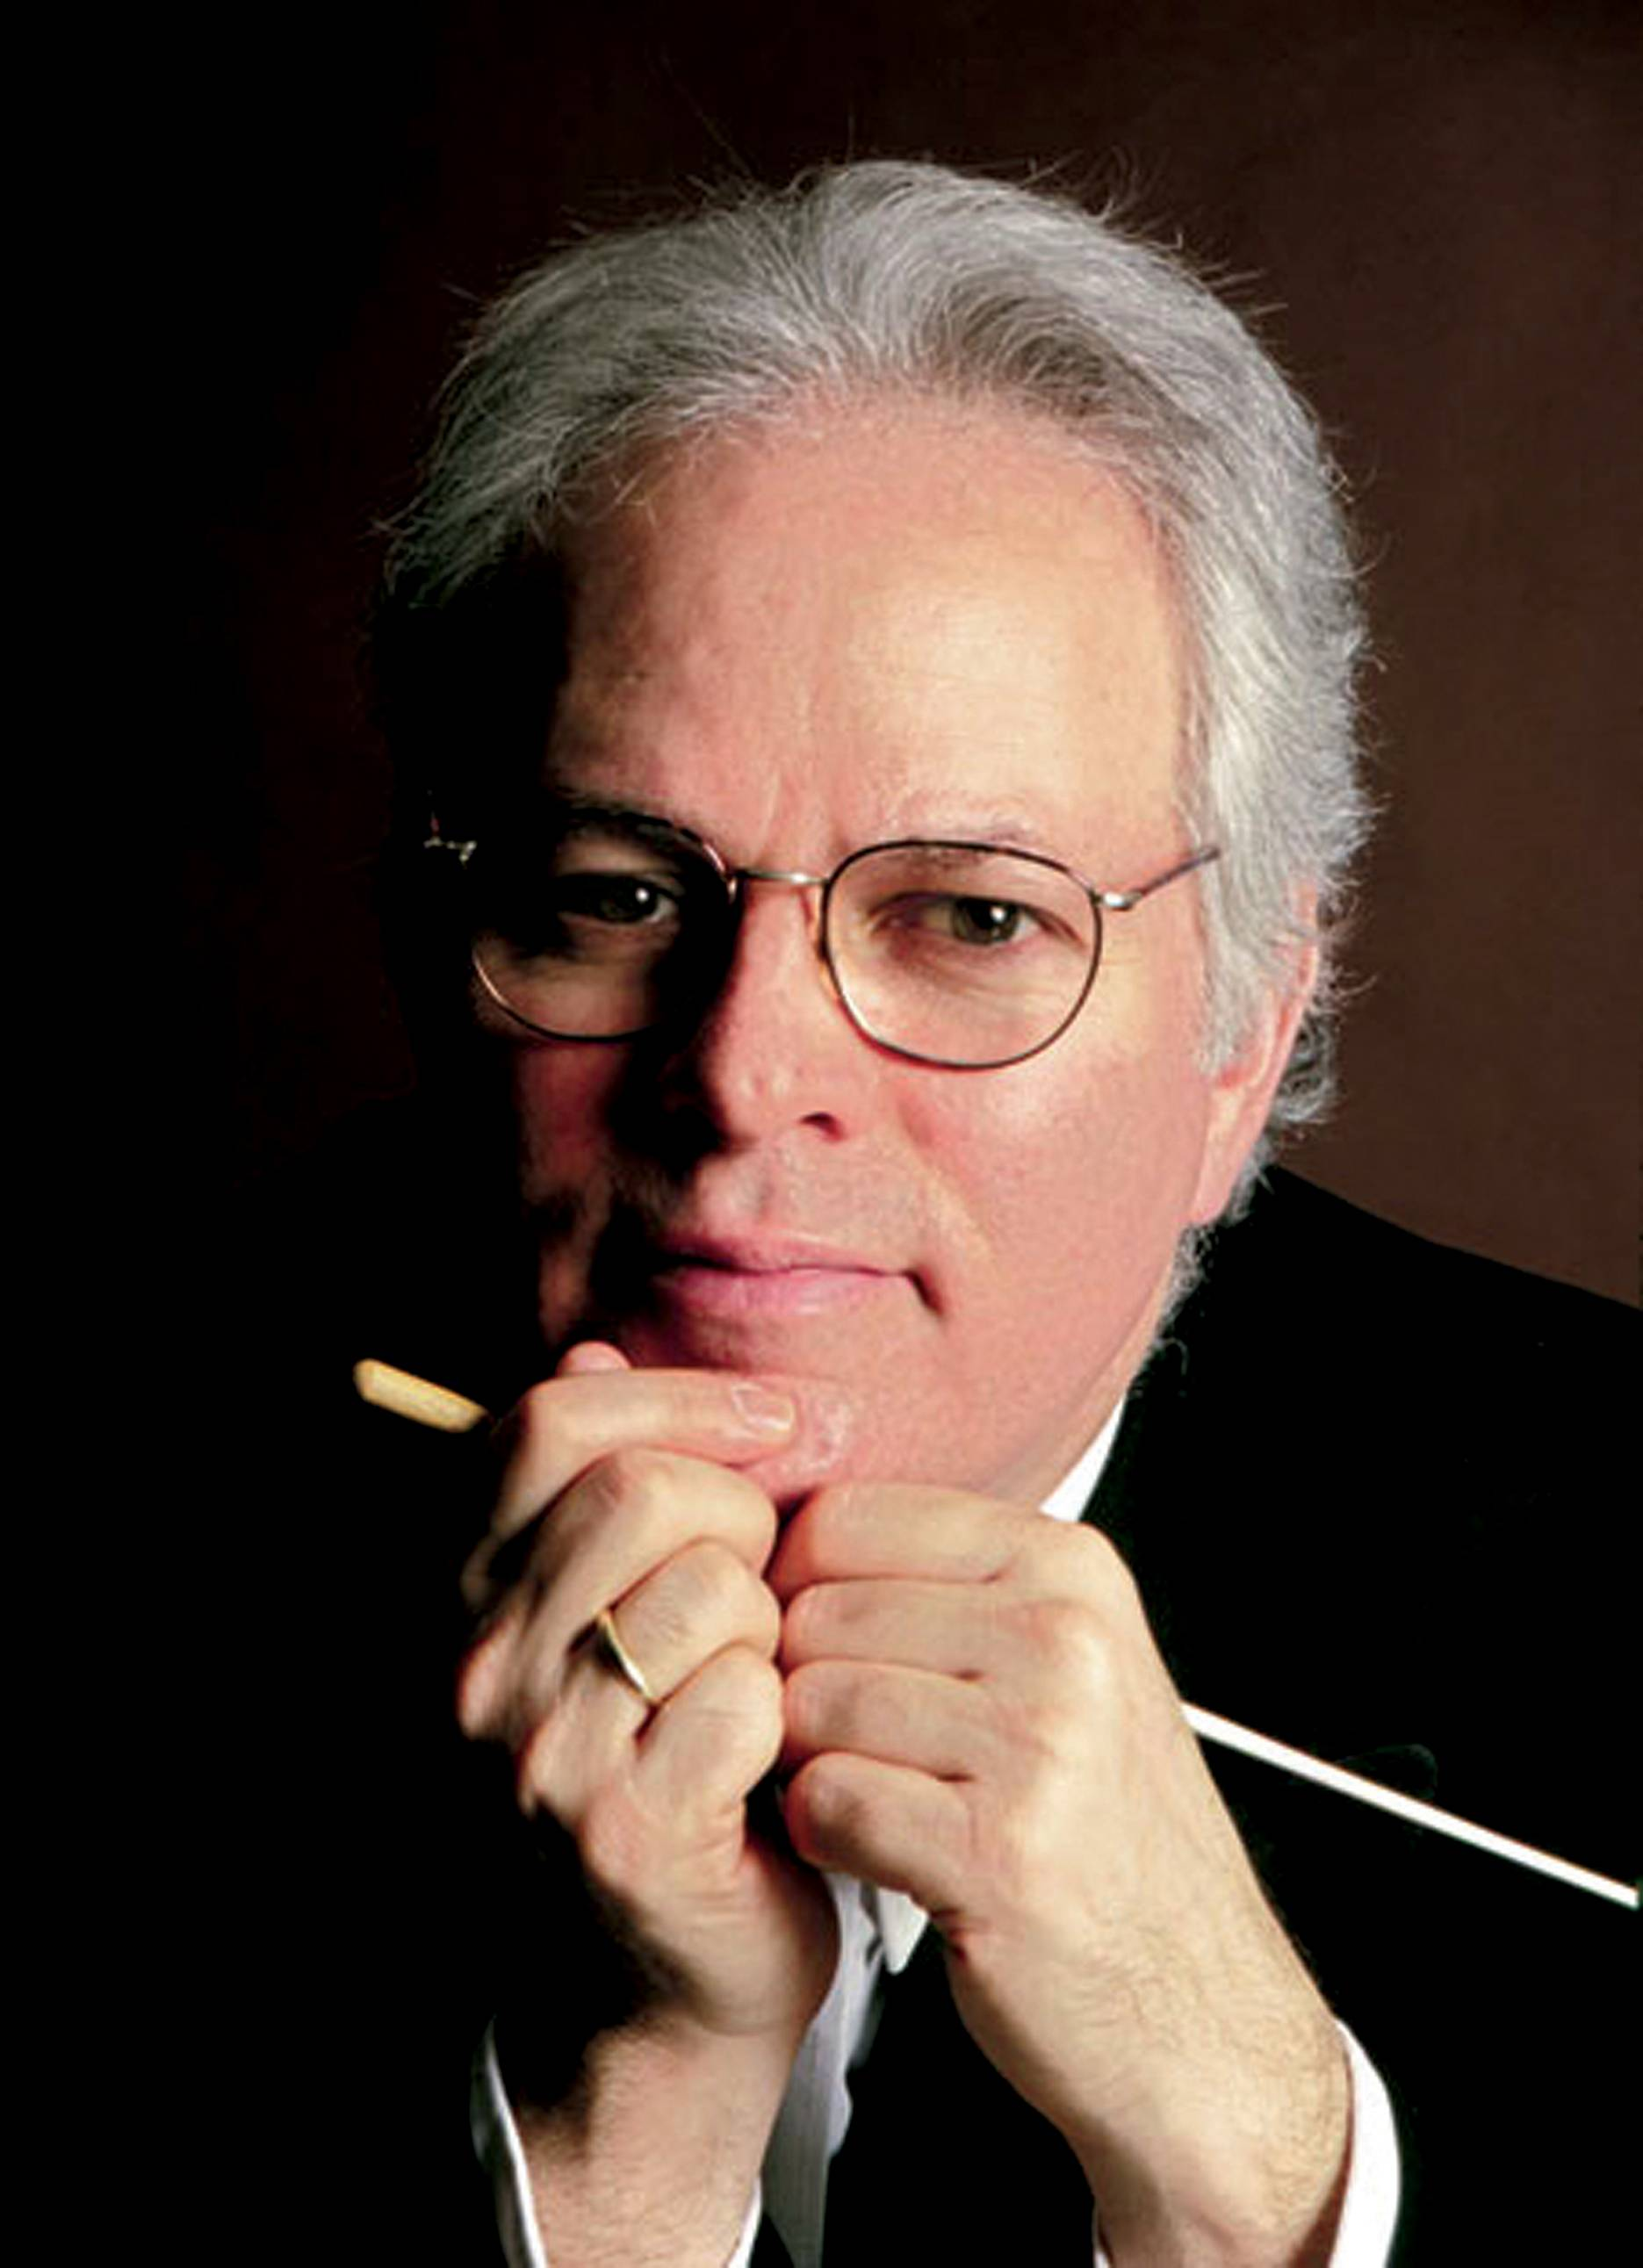 Maestro Joel Smirnoff will lead the Chicago Philharmonic Orchestra in the upcoming concert Romantic Serenade at Nichols Concert Hall in Evanston.